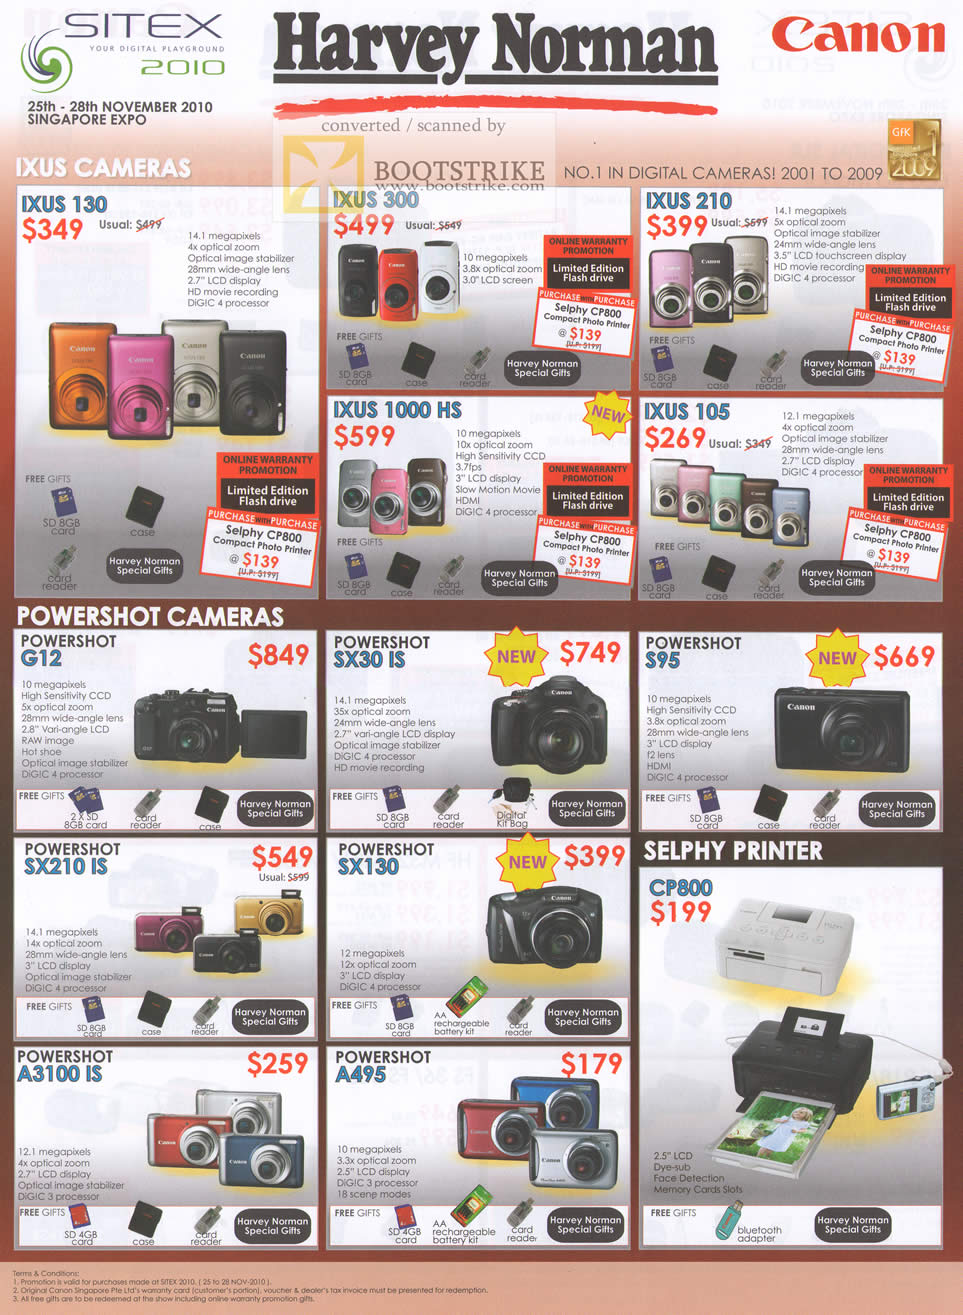 Sitex 2010 price list image brochure of Canon Digital Cameras Ixus 130 300 210 1000 HS 105 Powershot G12 SX30 IS Selphy Printer CP800